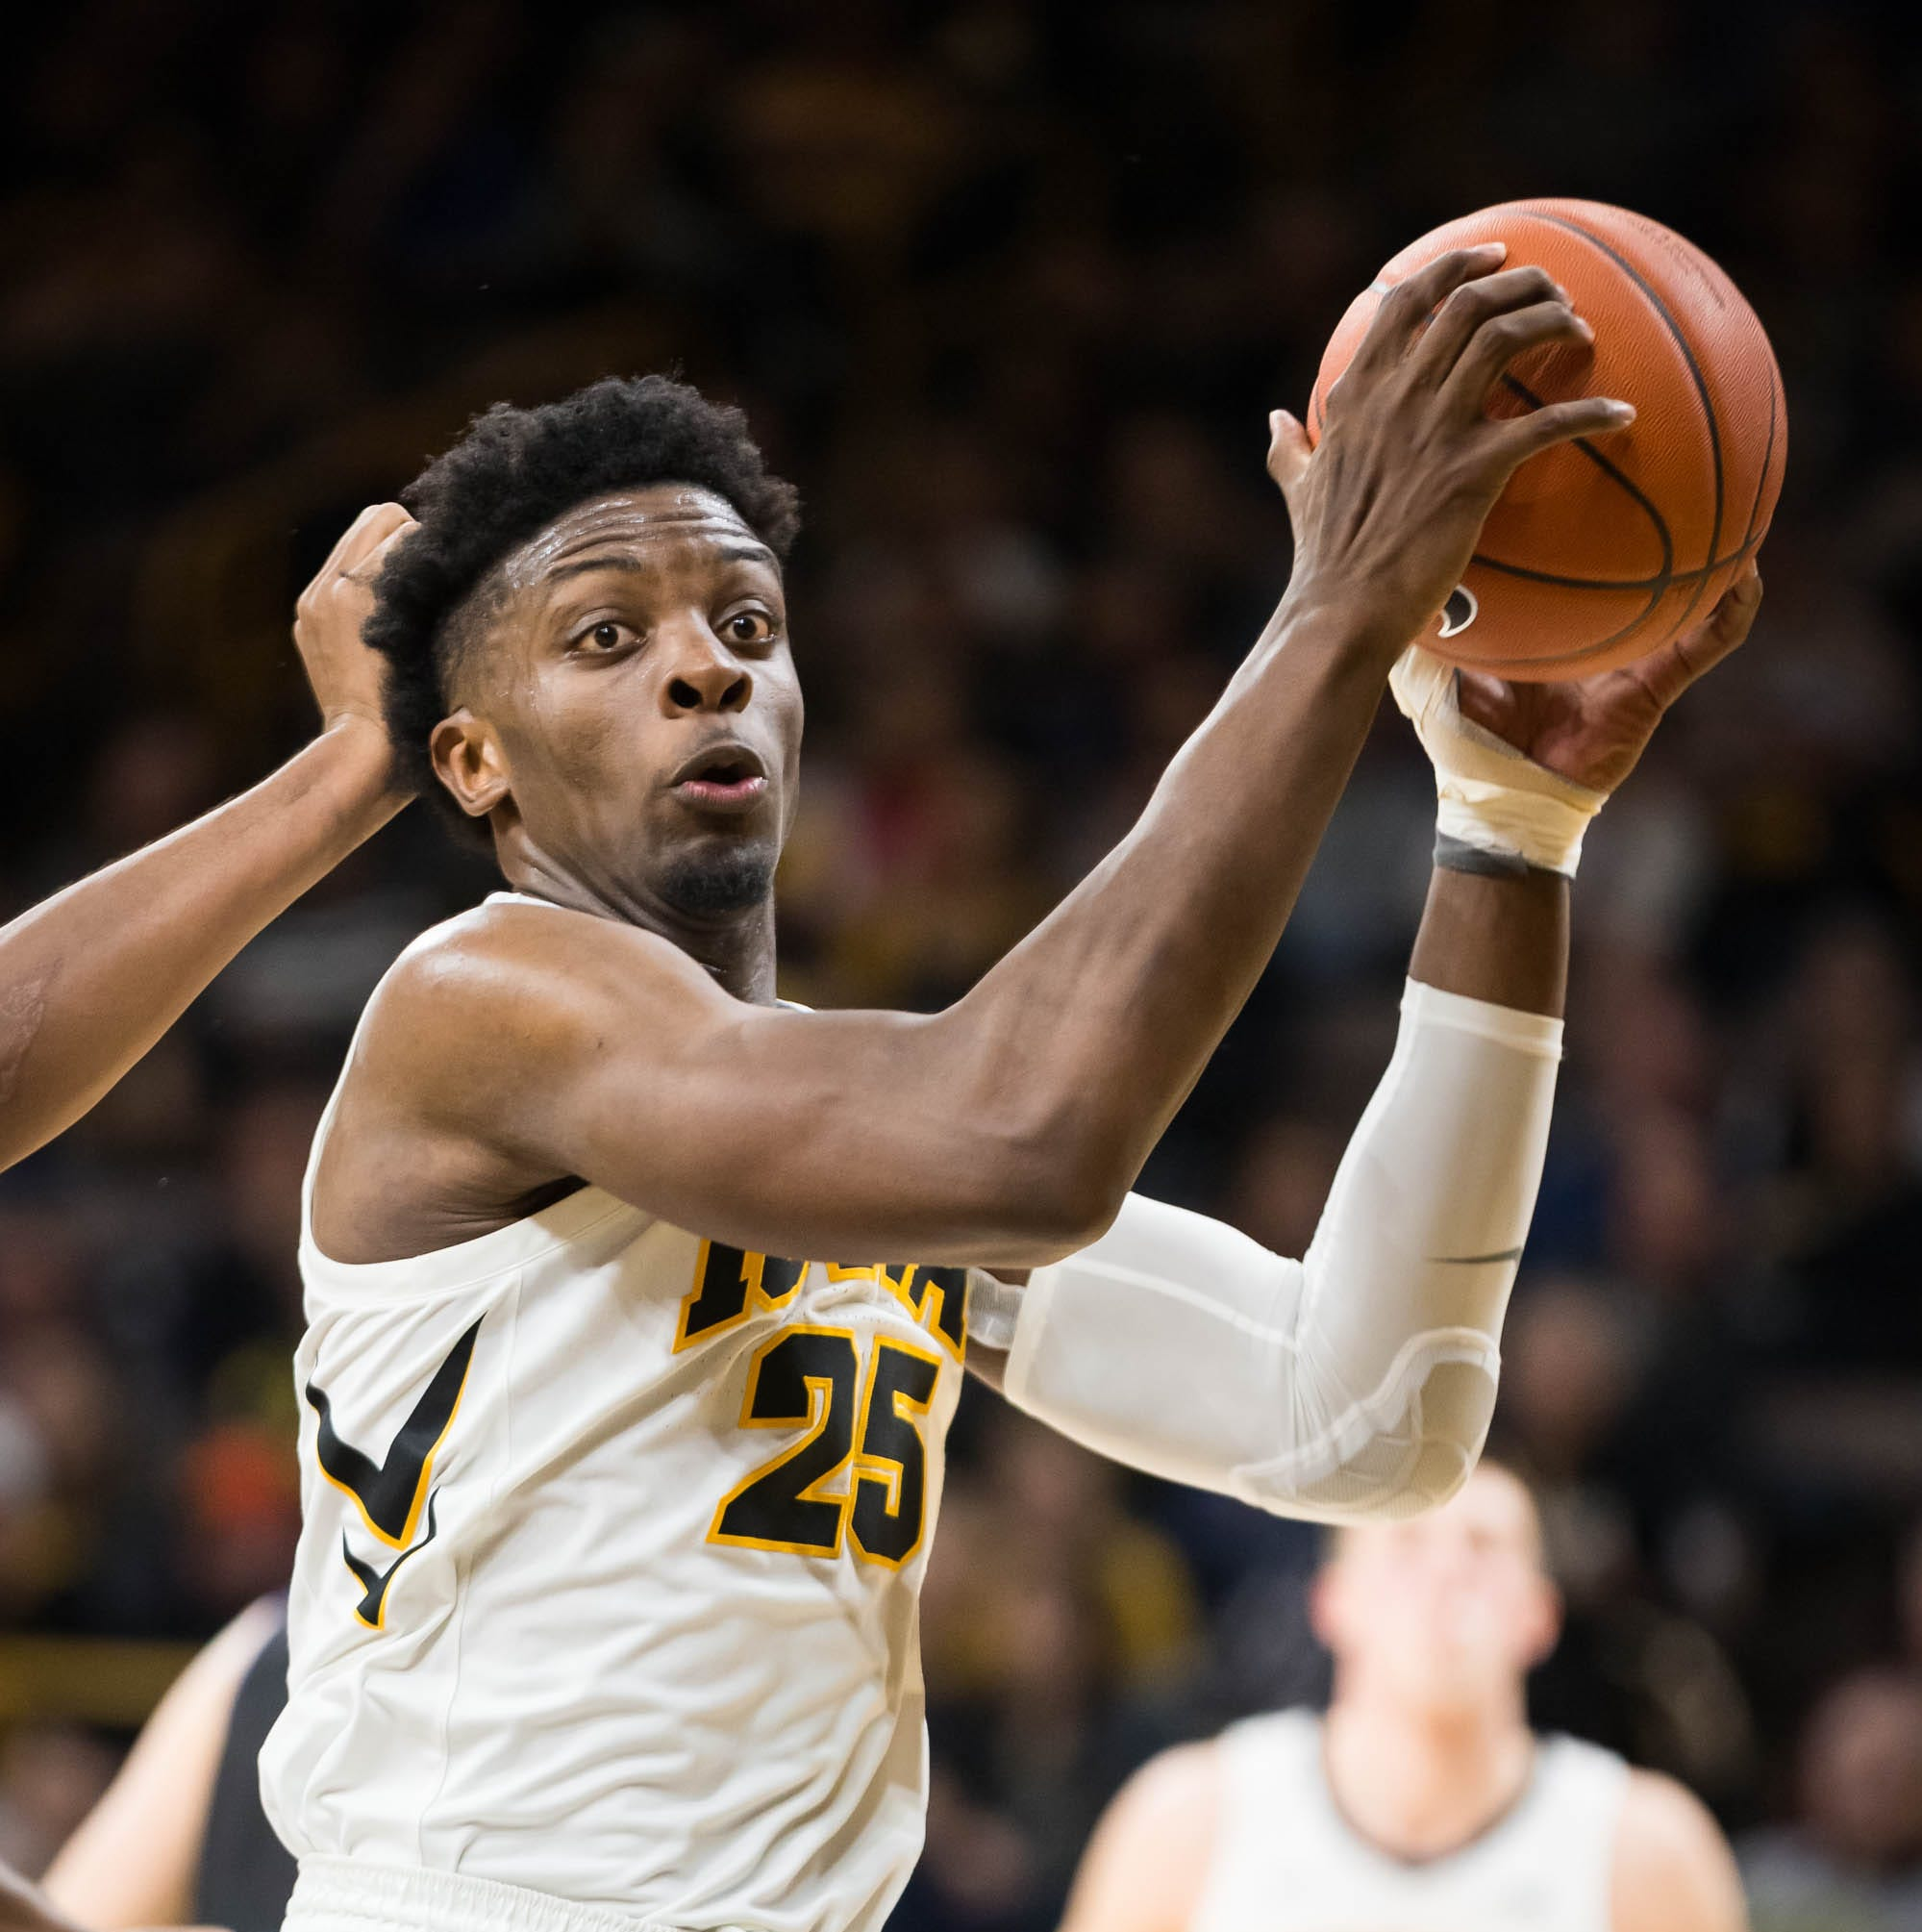 Iowa junior forward Tyler Cook (25) drives against Western Carolina in the first half at Carver Hawkeye Arena in Iowa City on Tuesday, Dec. 18, 2018.